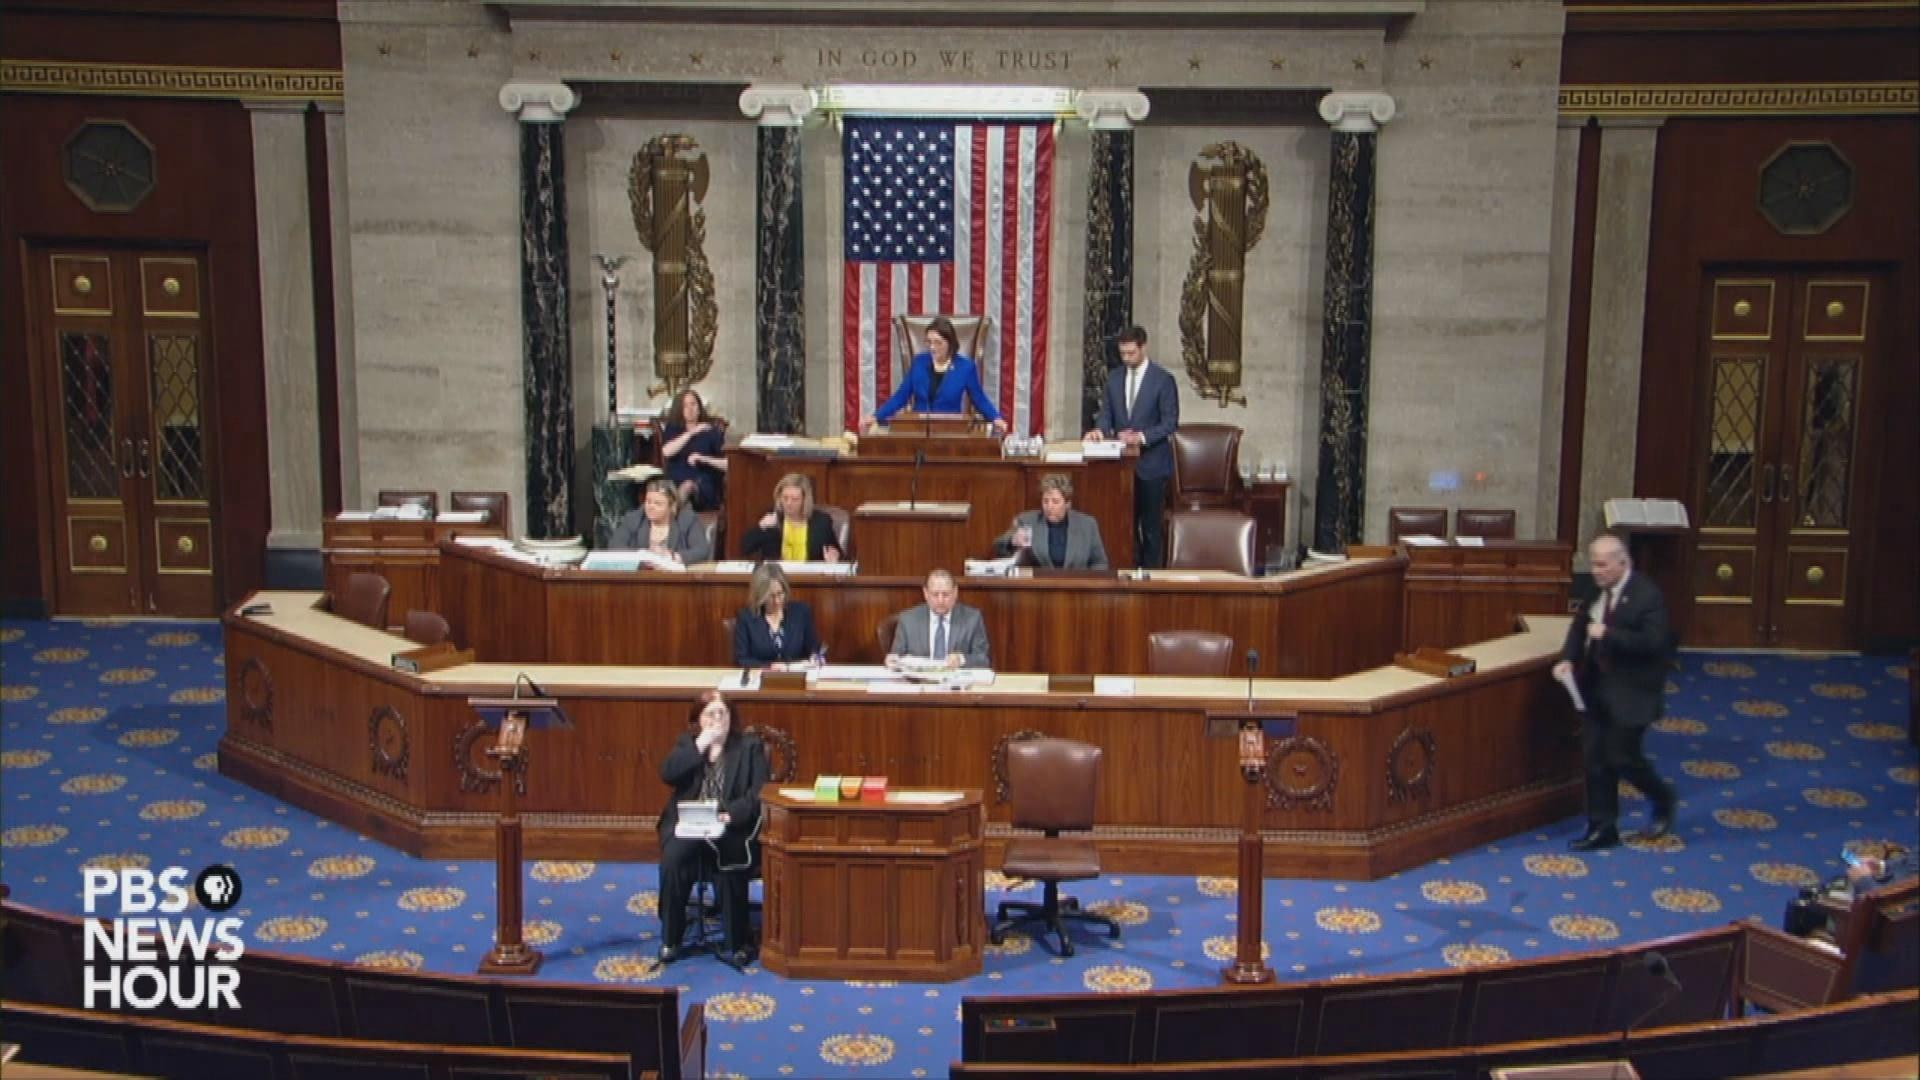 U.S. Reps. Respond to Crisis in the Middle East